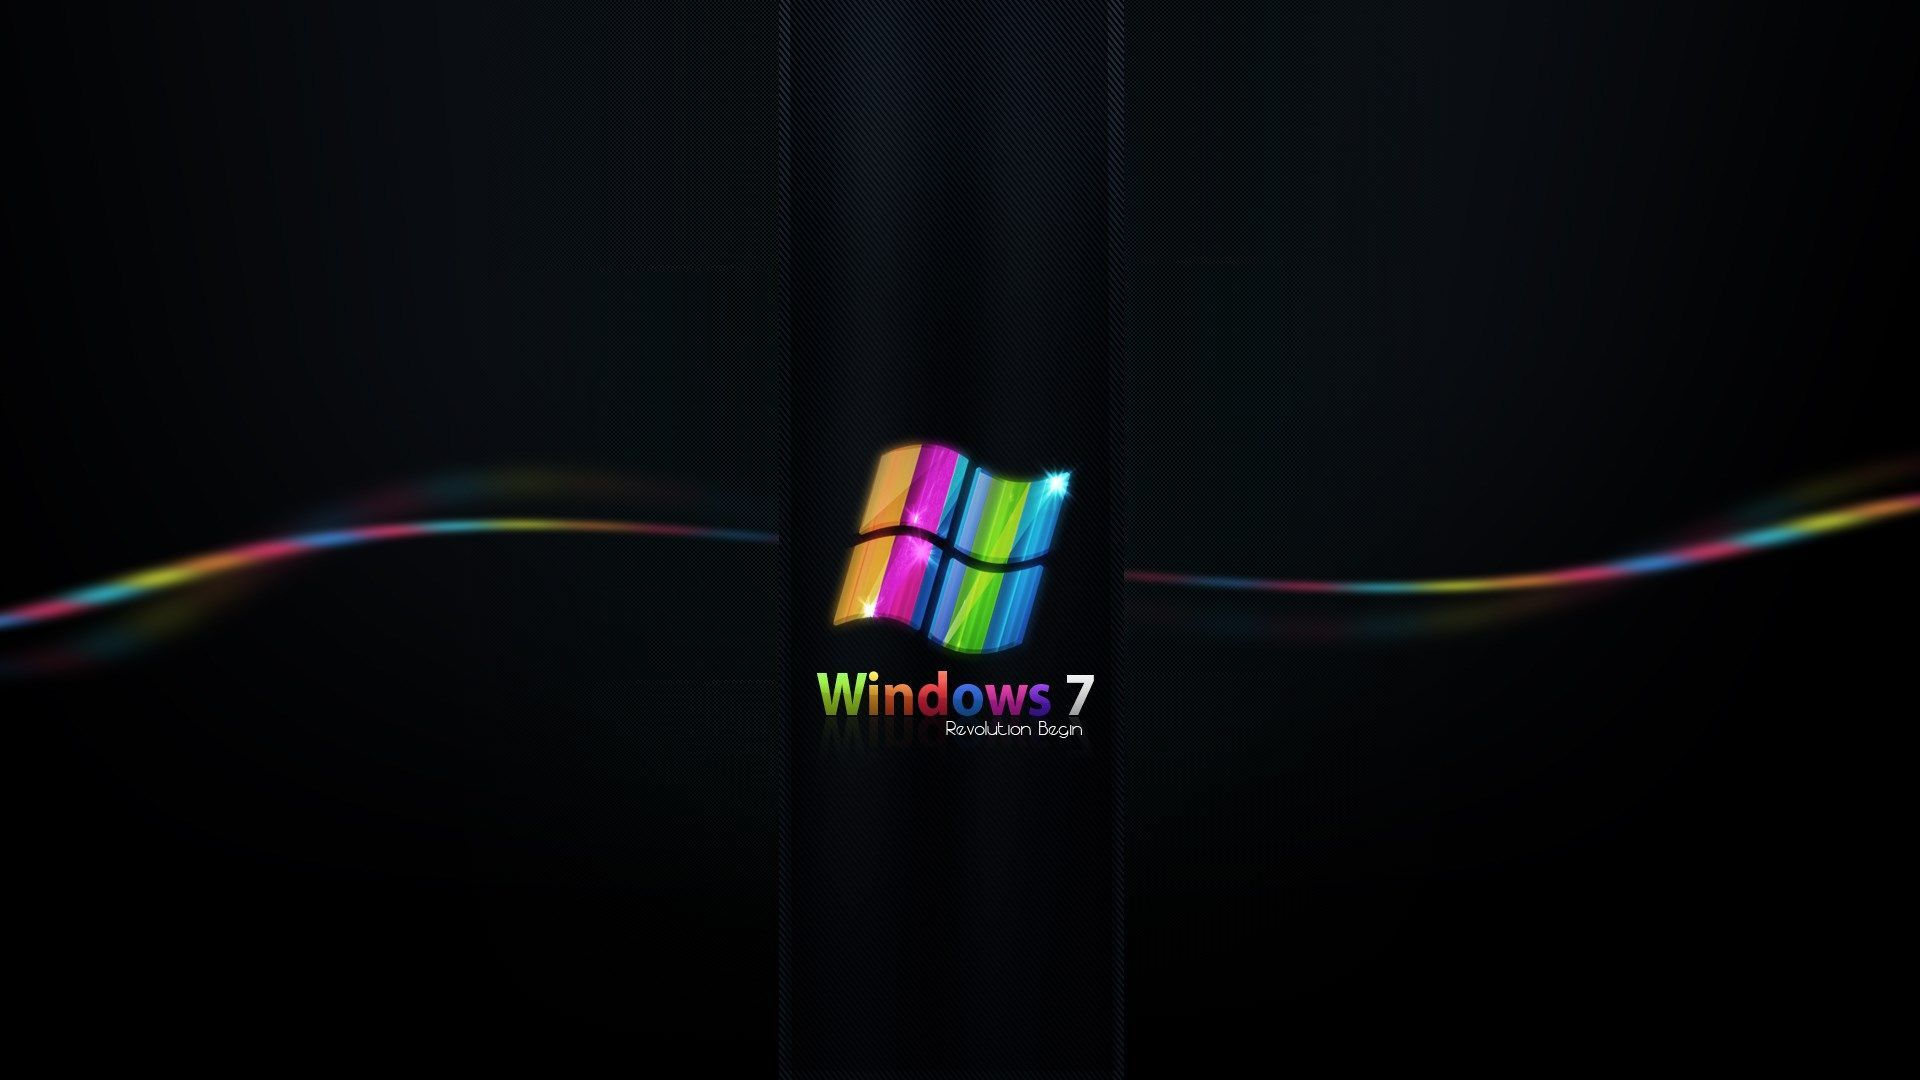 Computer Wallpaper For Windows 7 4k In 2020 With Images